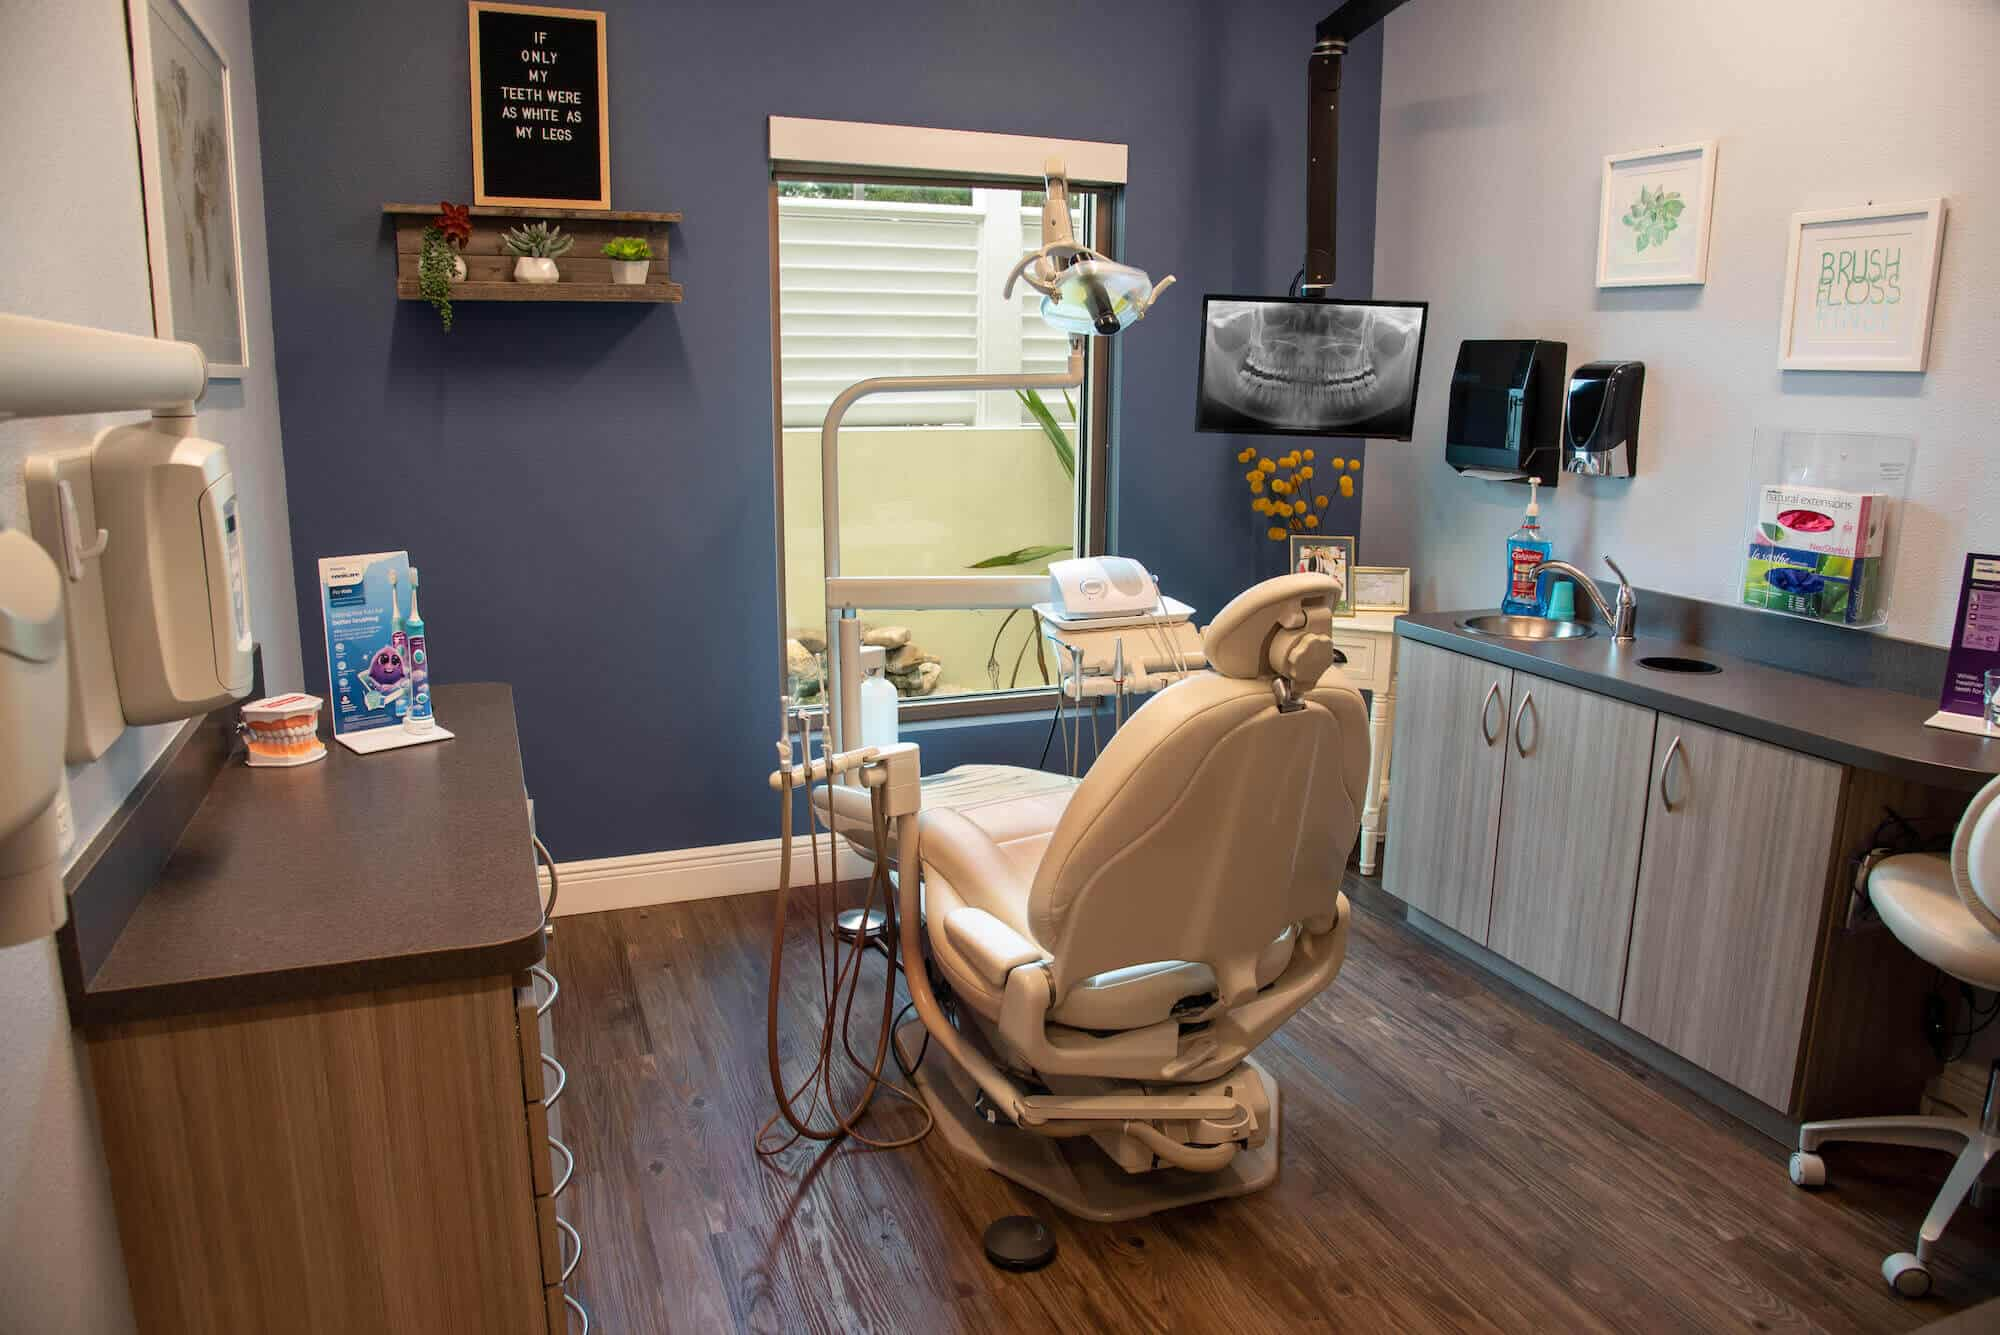 agnini-family-dental-lakeland-florida-SS Hyg Op